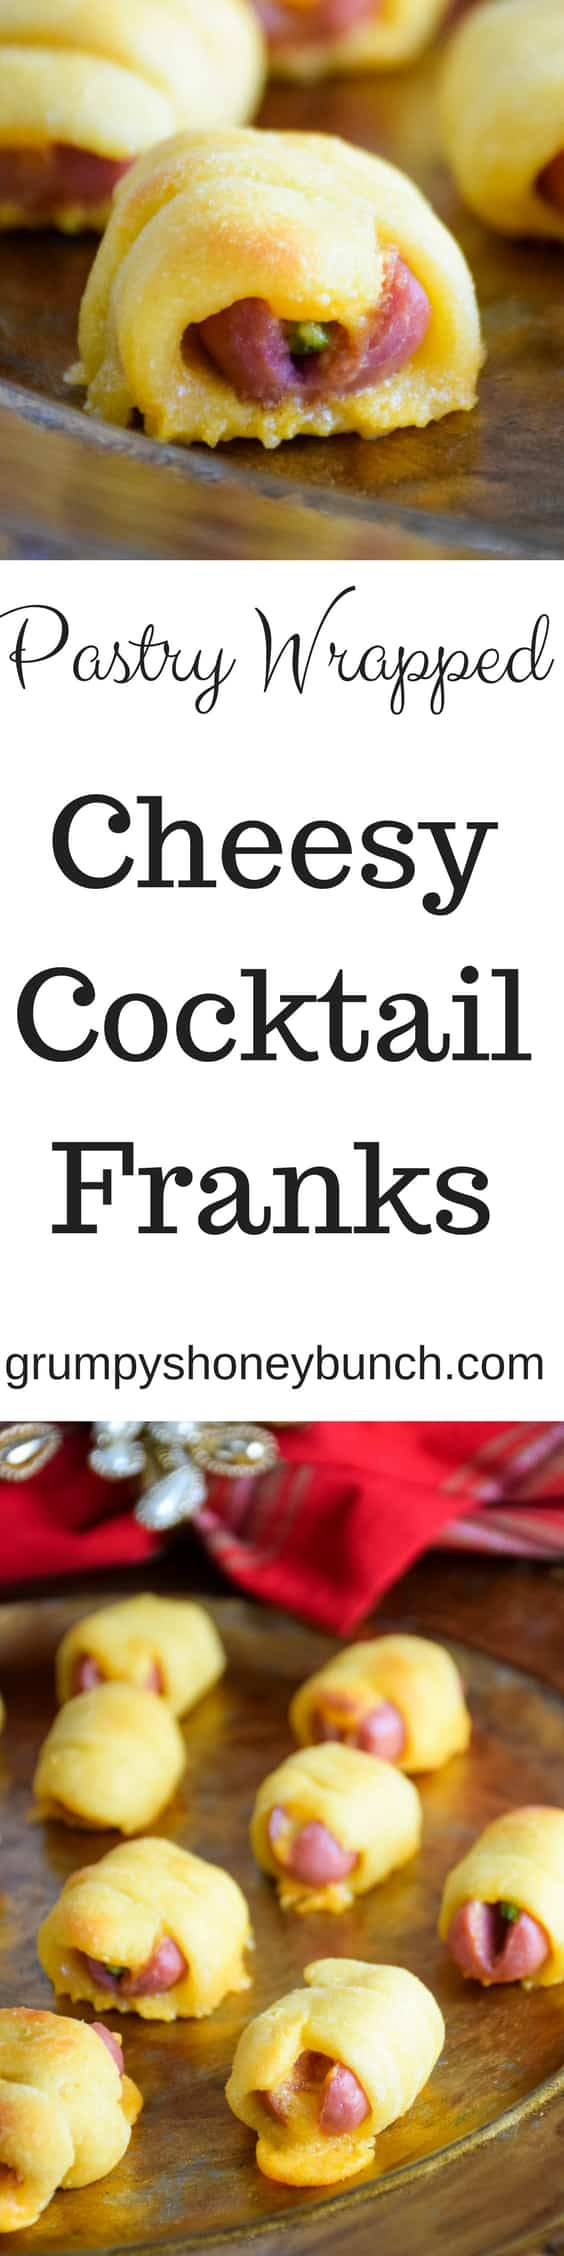 Pastry Wrapped Cheesy Cocktail Franks